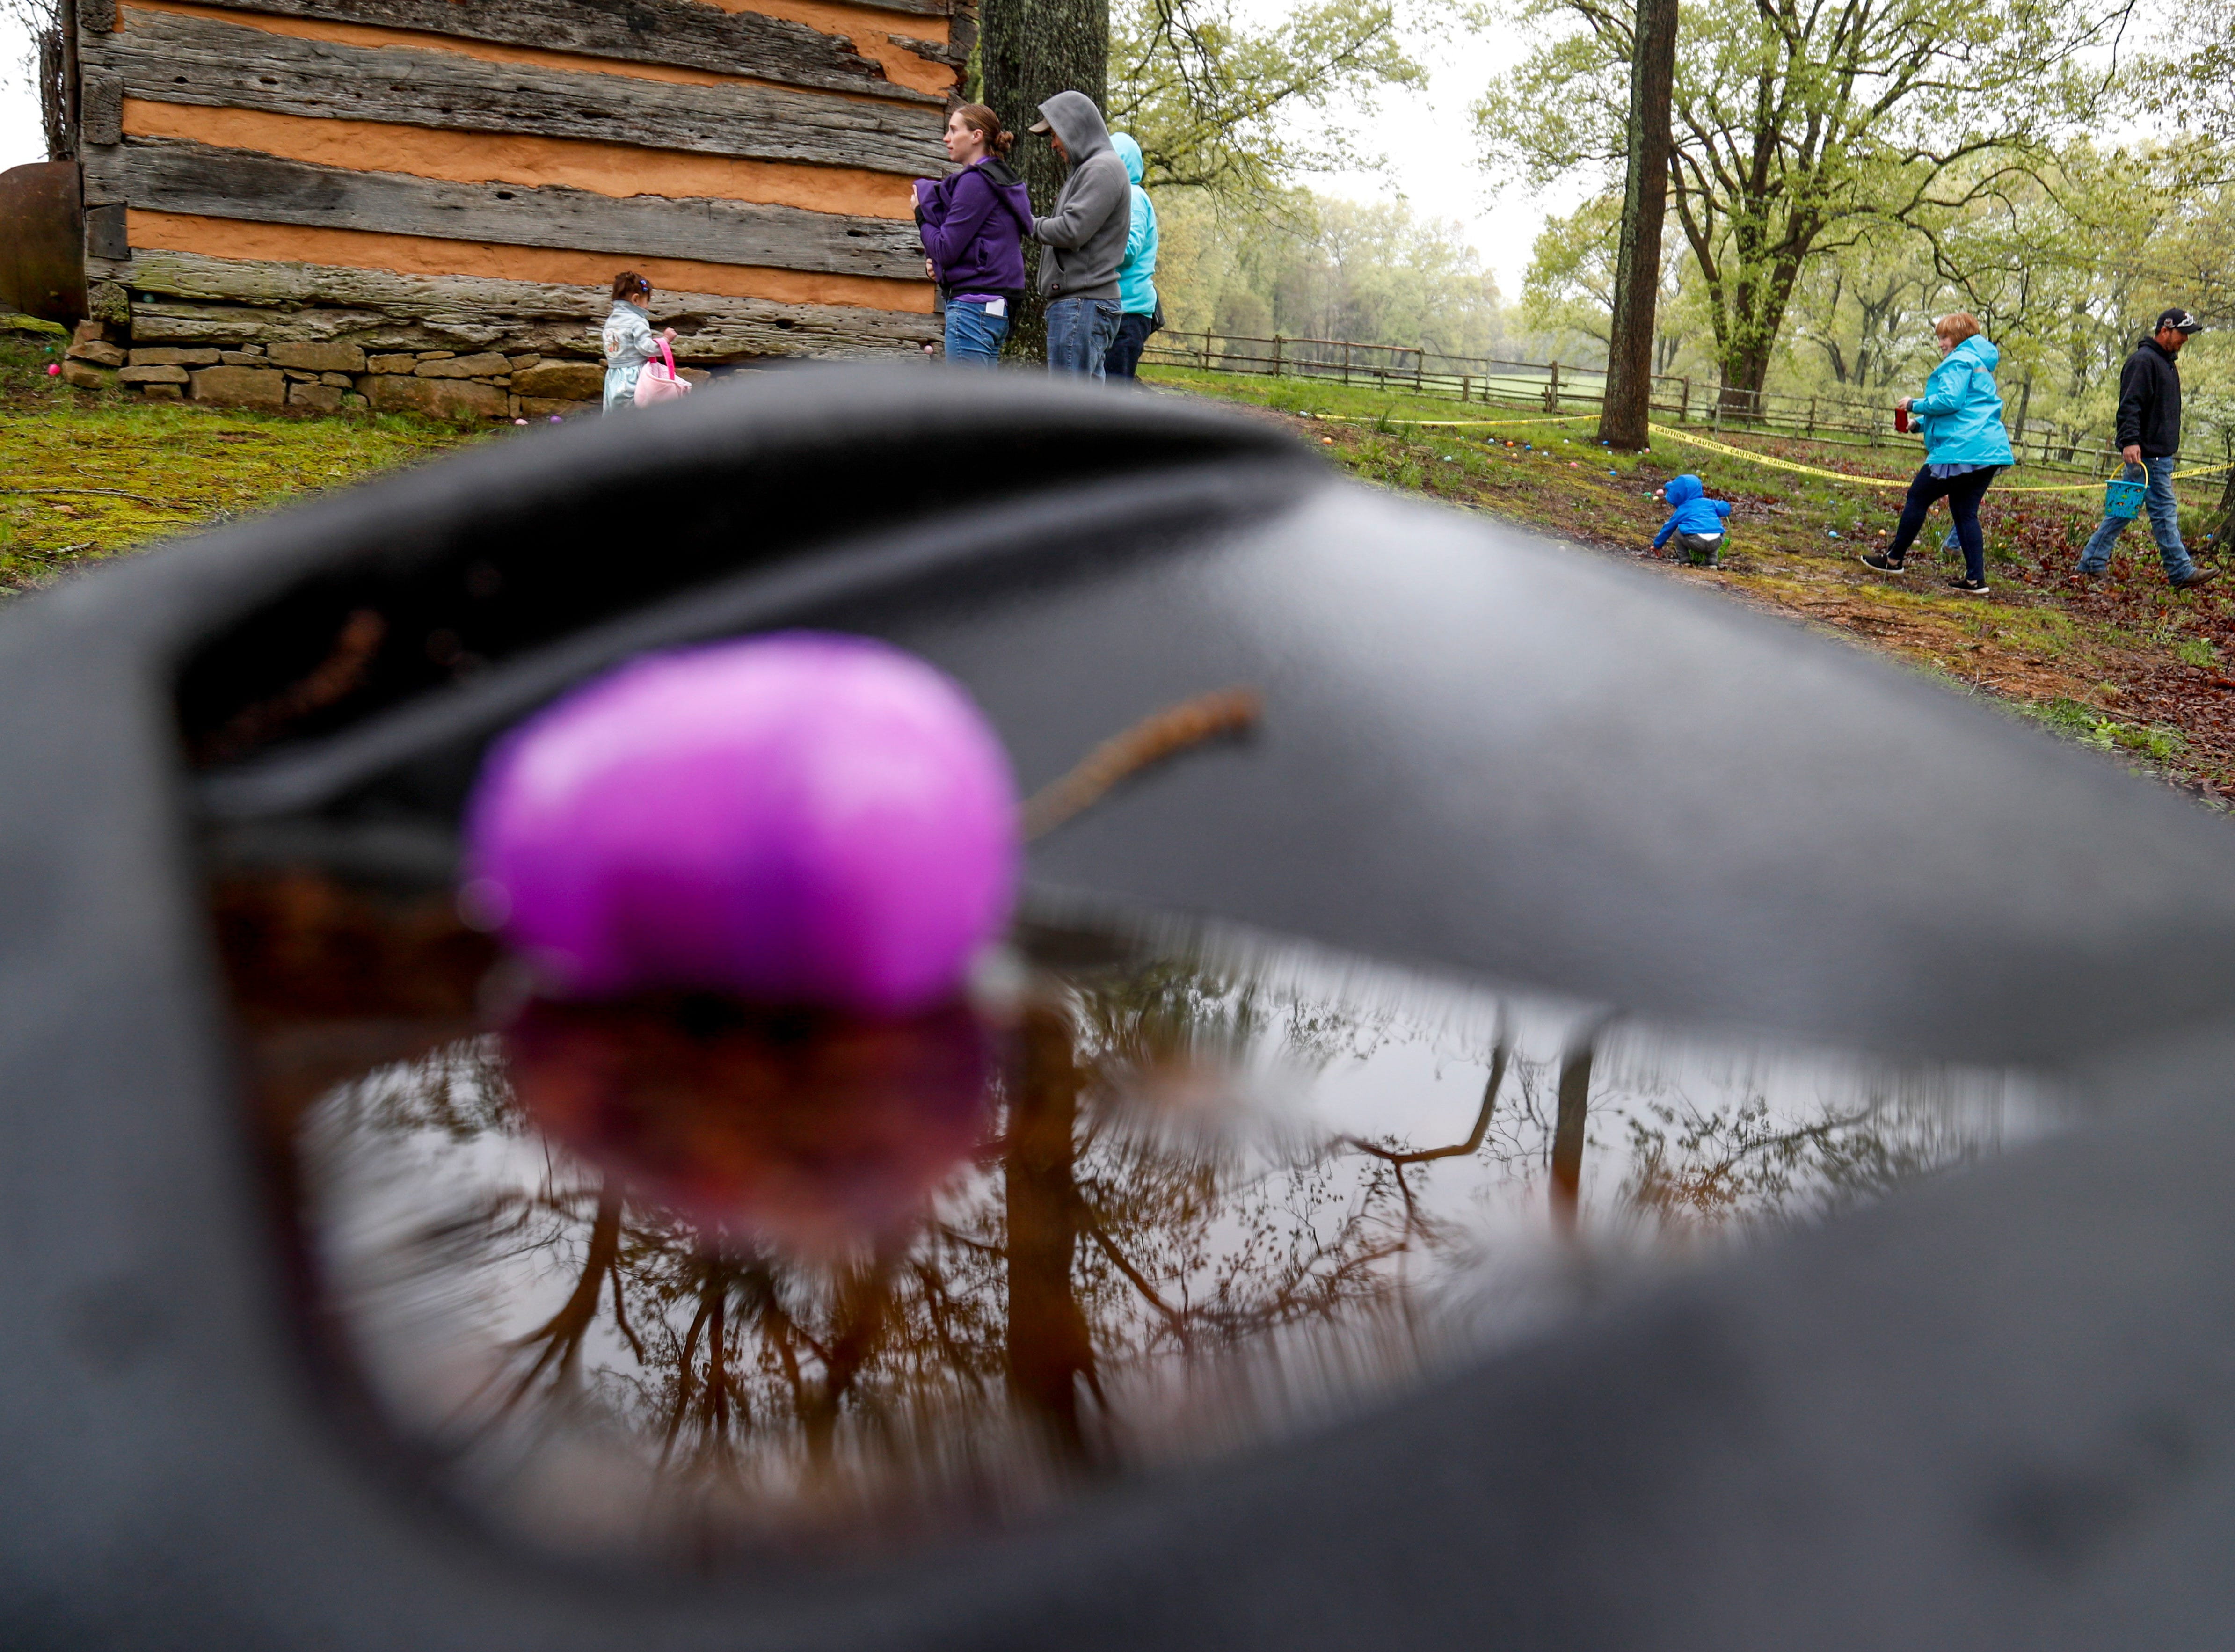 Families search for eggs amongst the trees at the annual Easter egg hunts at Historic Collinsville in Clarksville, Tenn., on Saturday, April 20, 2019.